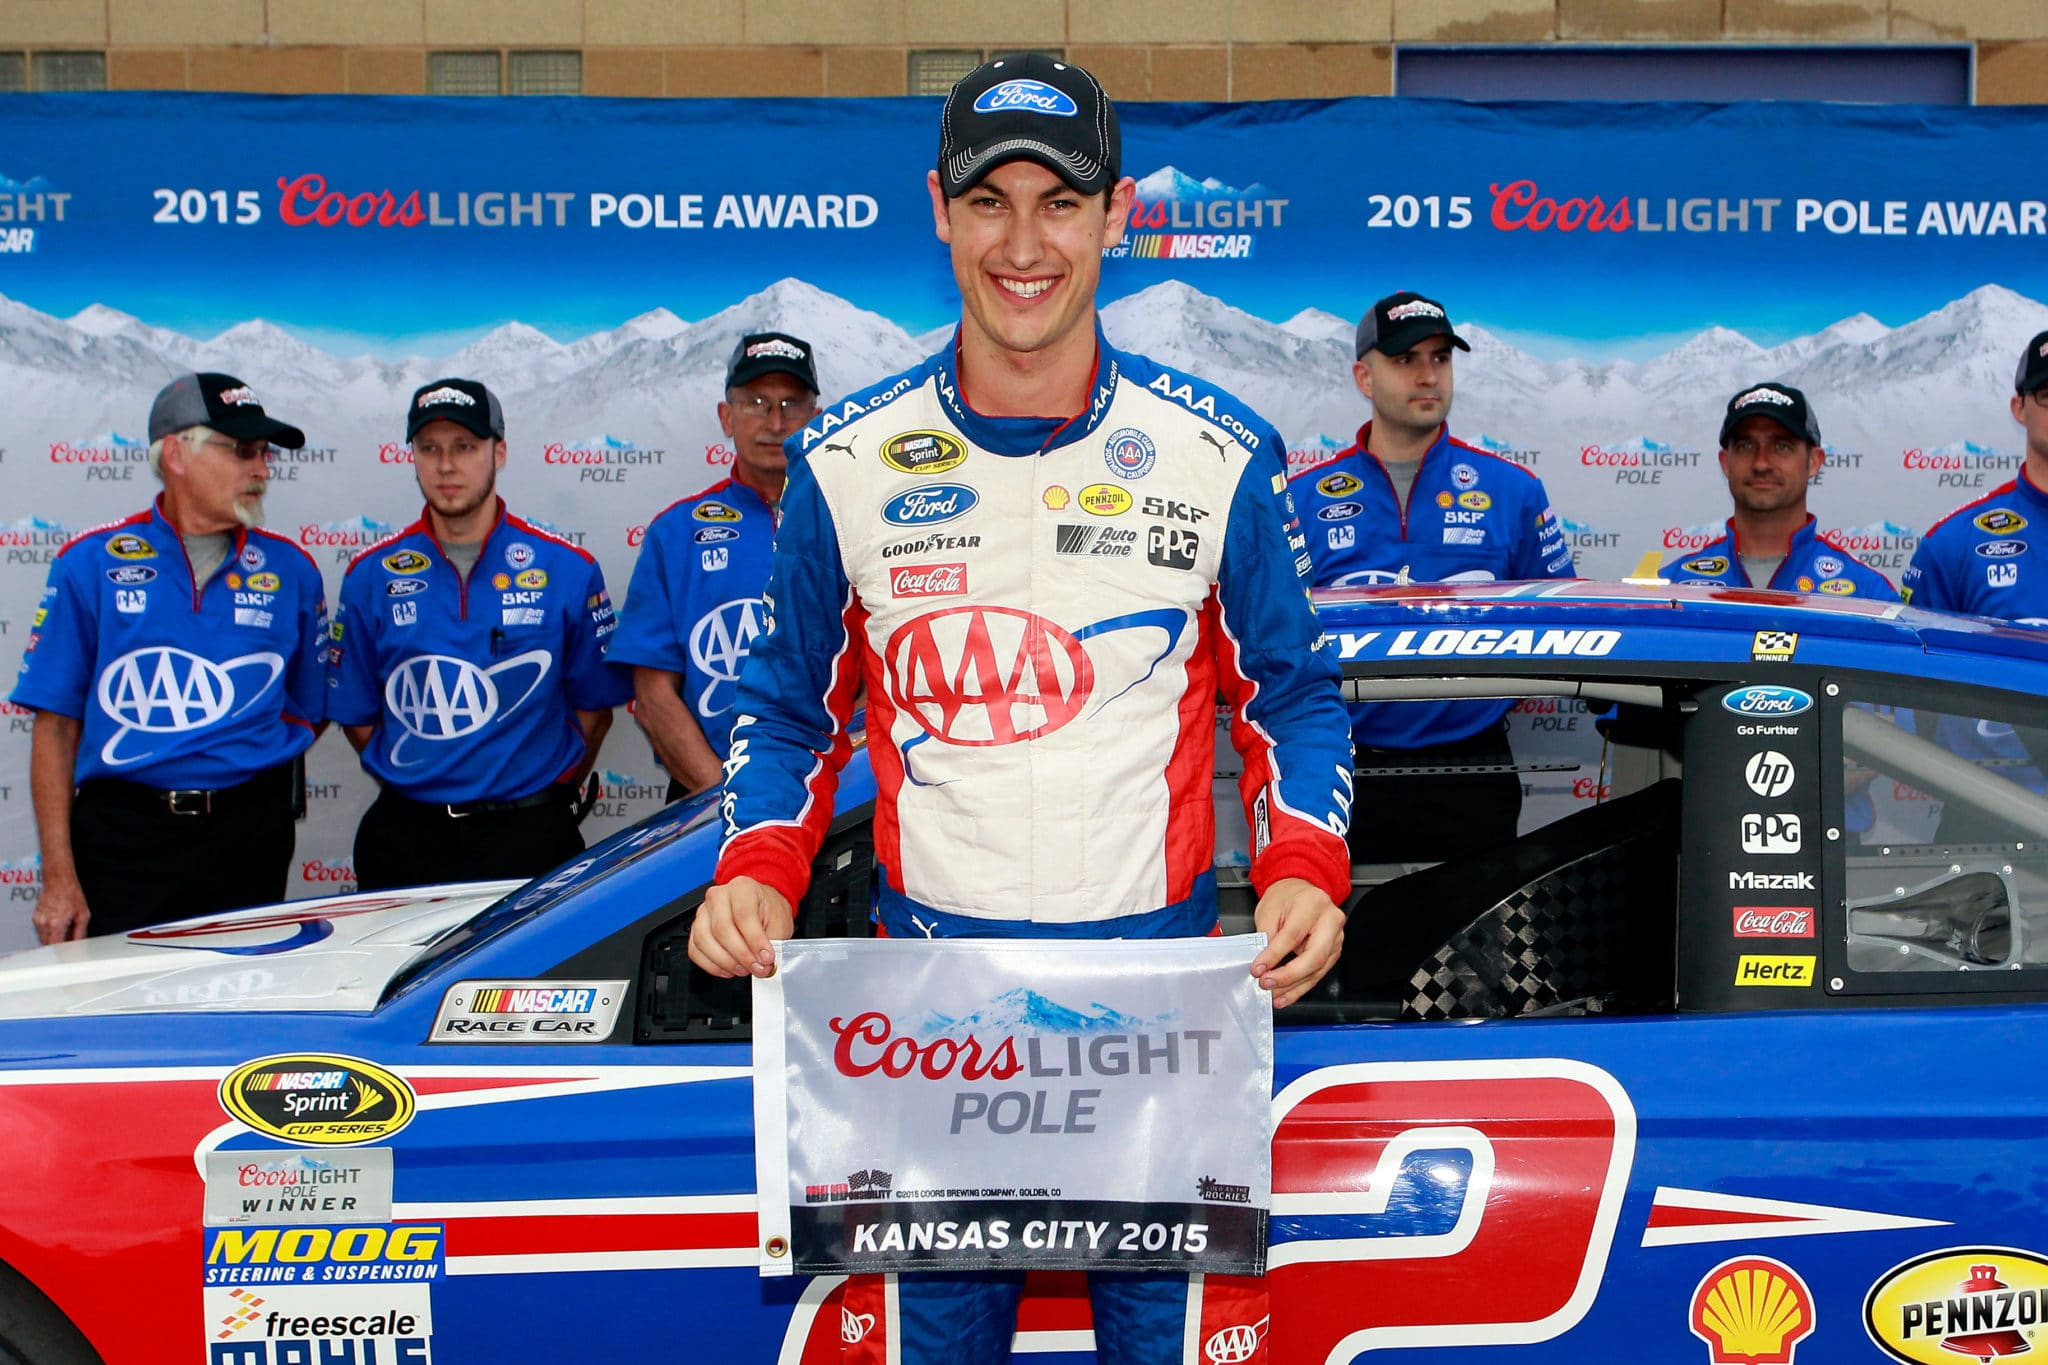 2015 Kansas I CUP Joey Logano pole credit NASCAR via Getty Images